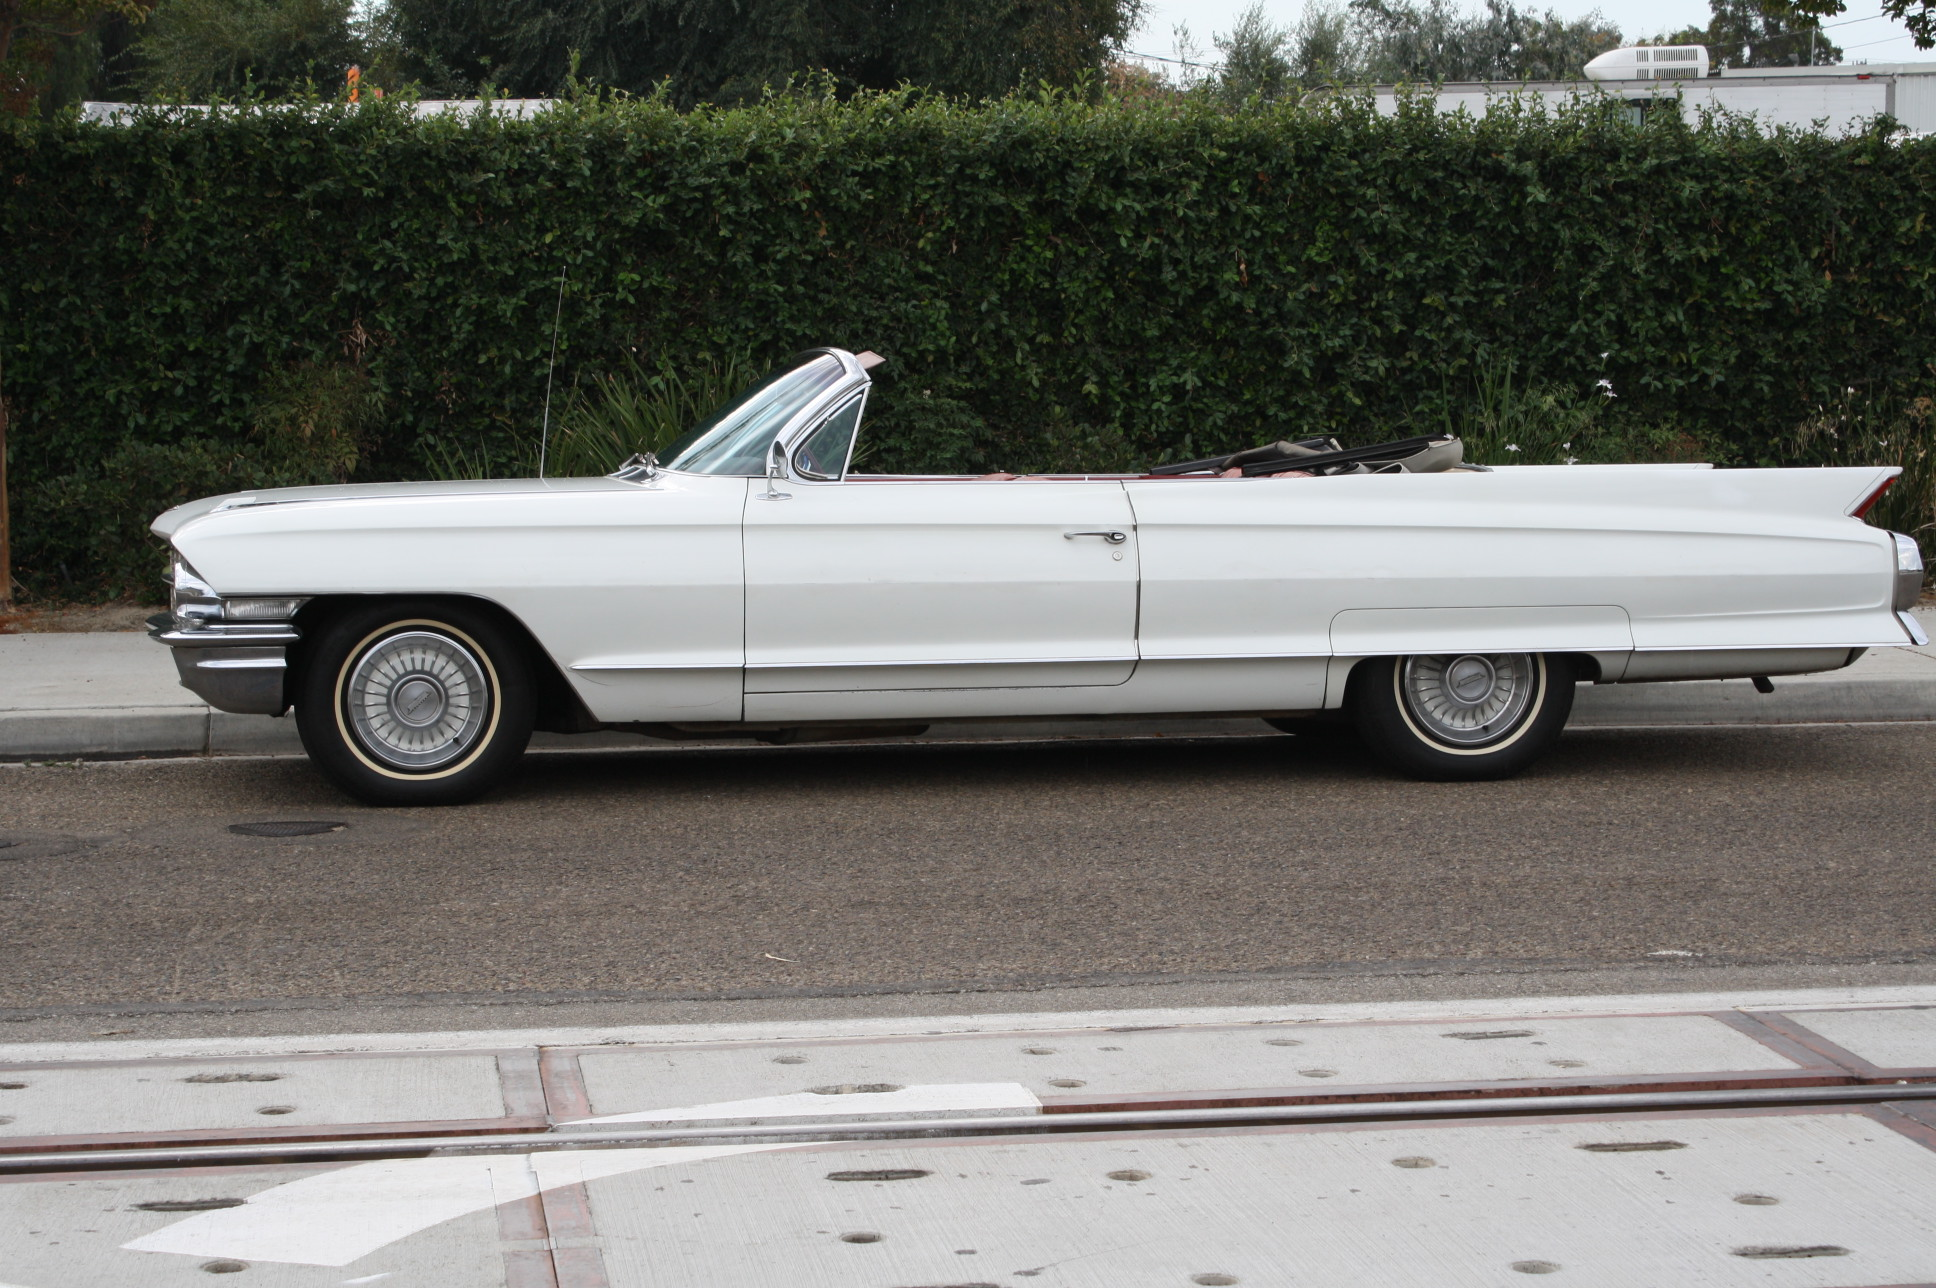 1962 Cadillac Convertible | The Vault Classic Cars